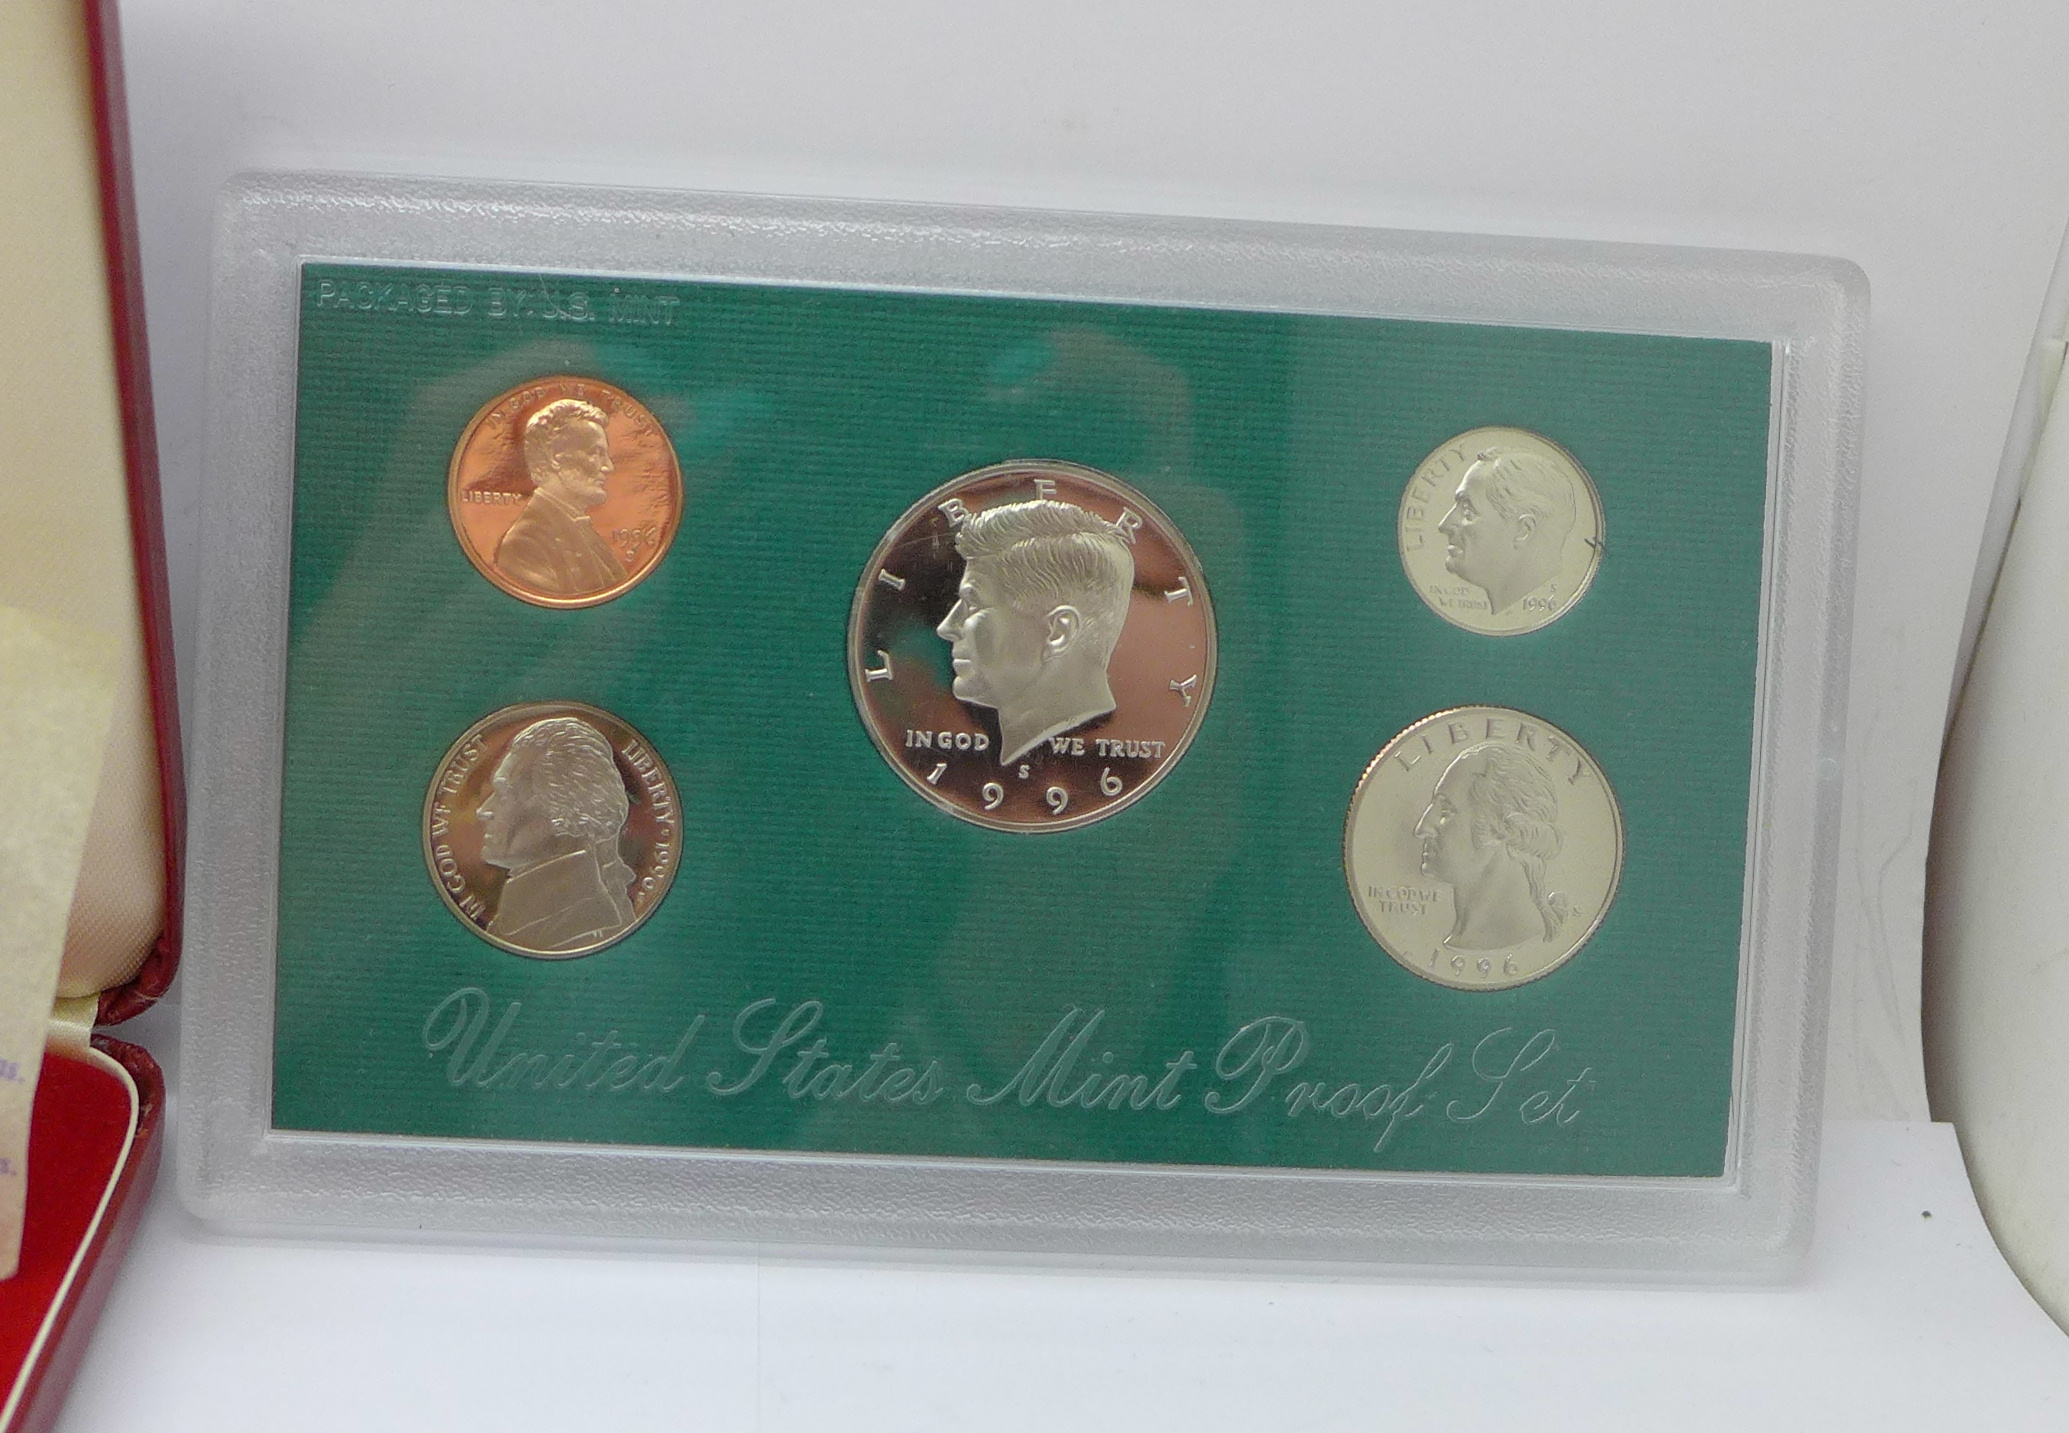 A Tower Mint limited edition nickel silver 5-coin set, cased, a 1996 United States mint proof set, - Image 4 of 5